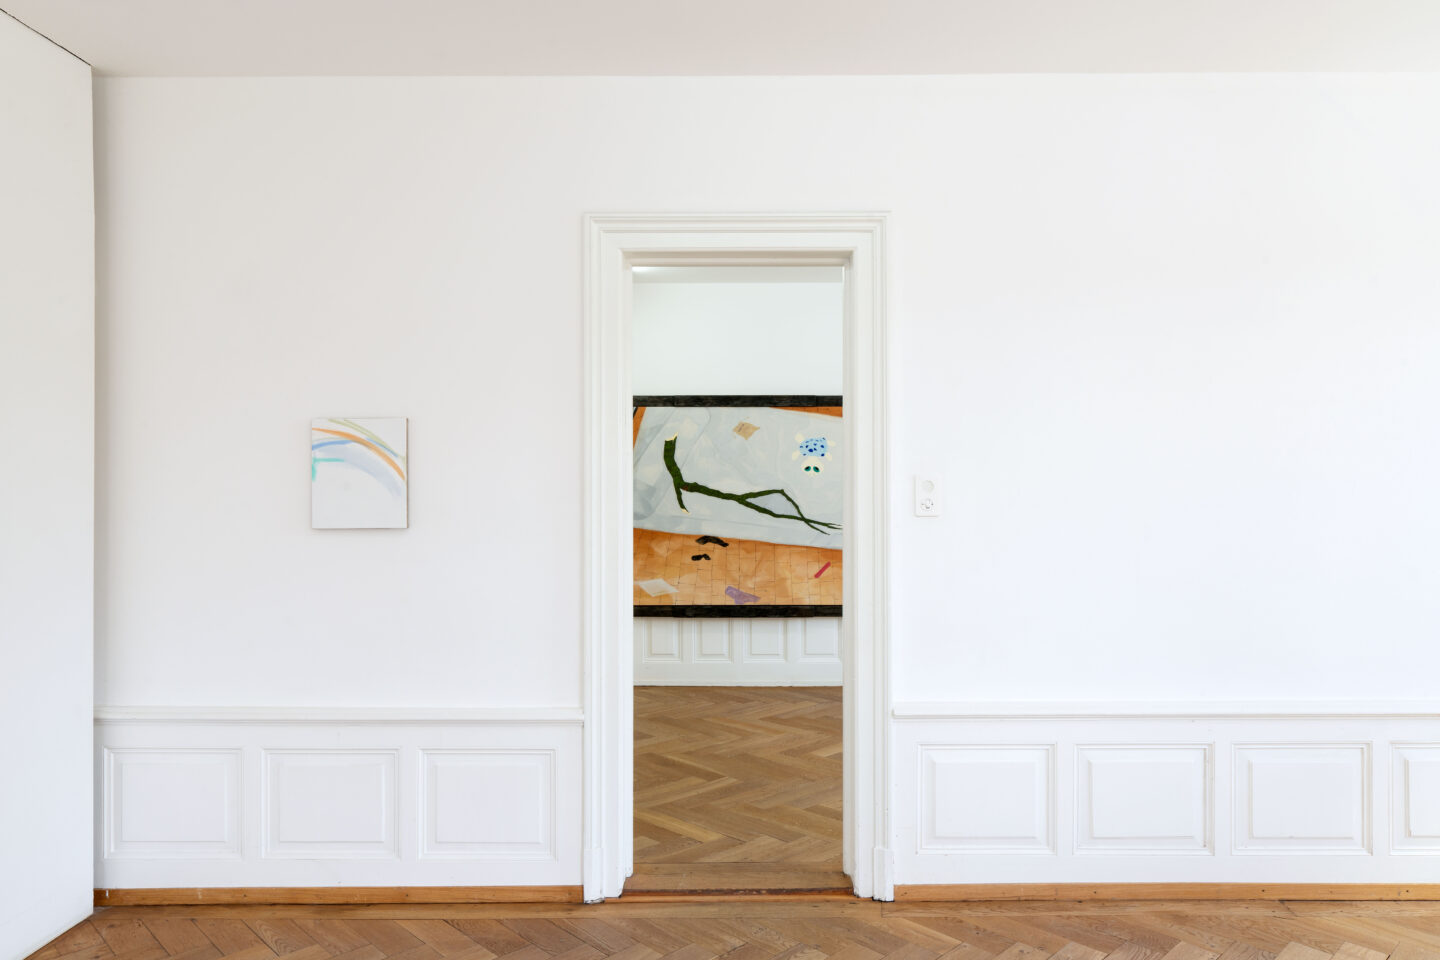 Exhibition View Groupshow «Soft Shell; view on Nora Steiner» at Kunsthaus Langenthal, Langenthal, 2020 / Photo: CE / Courtesy: the artists and Kunsthaus Langenthal